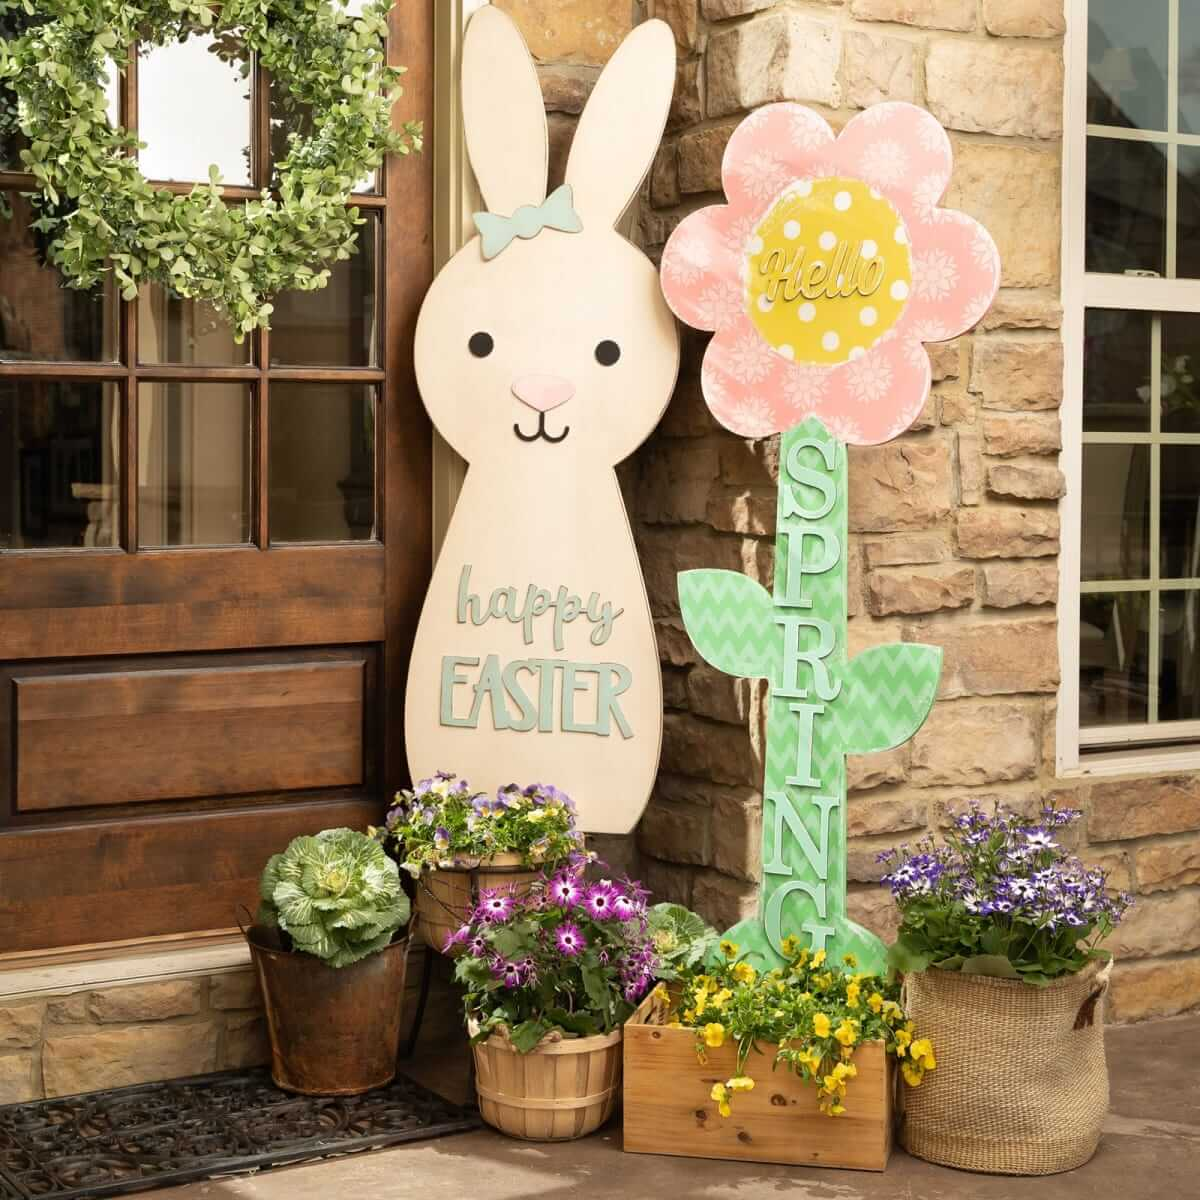 Hopeful and Awesome Ideas to Keep Easter Hopping